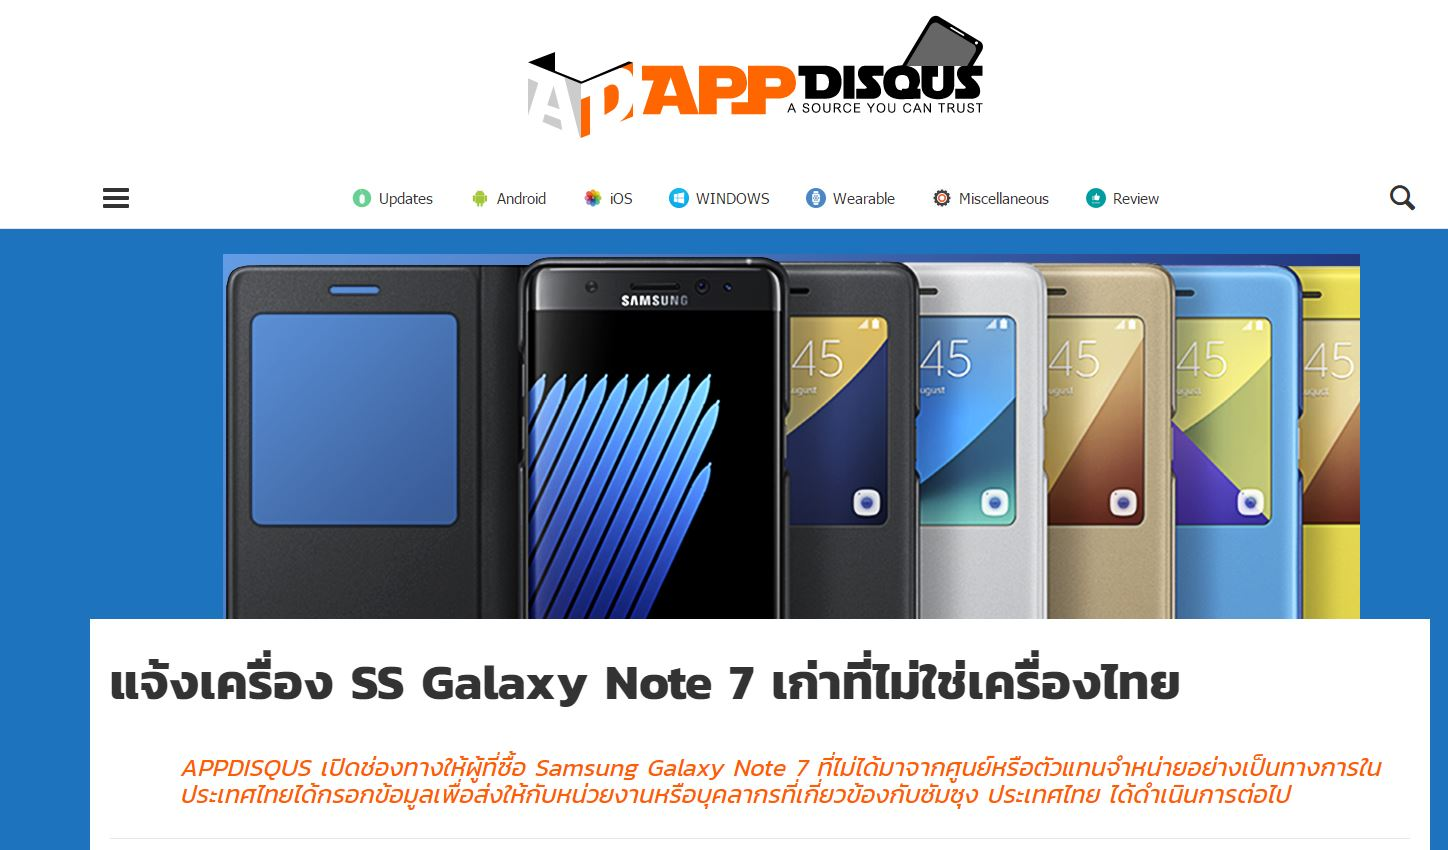 samsungnote7 replacement form